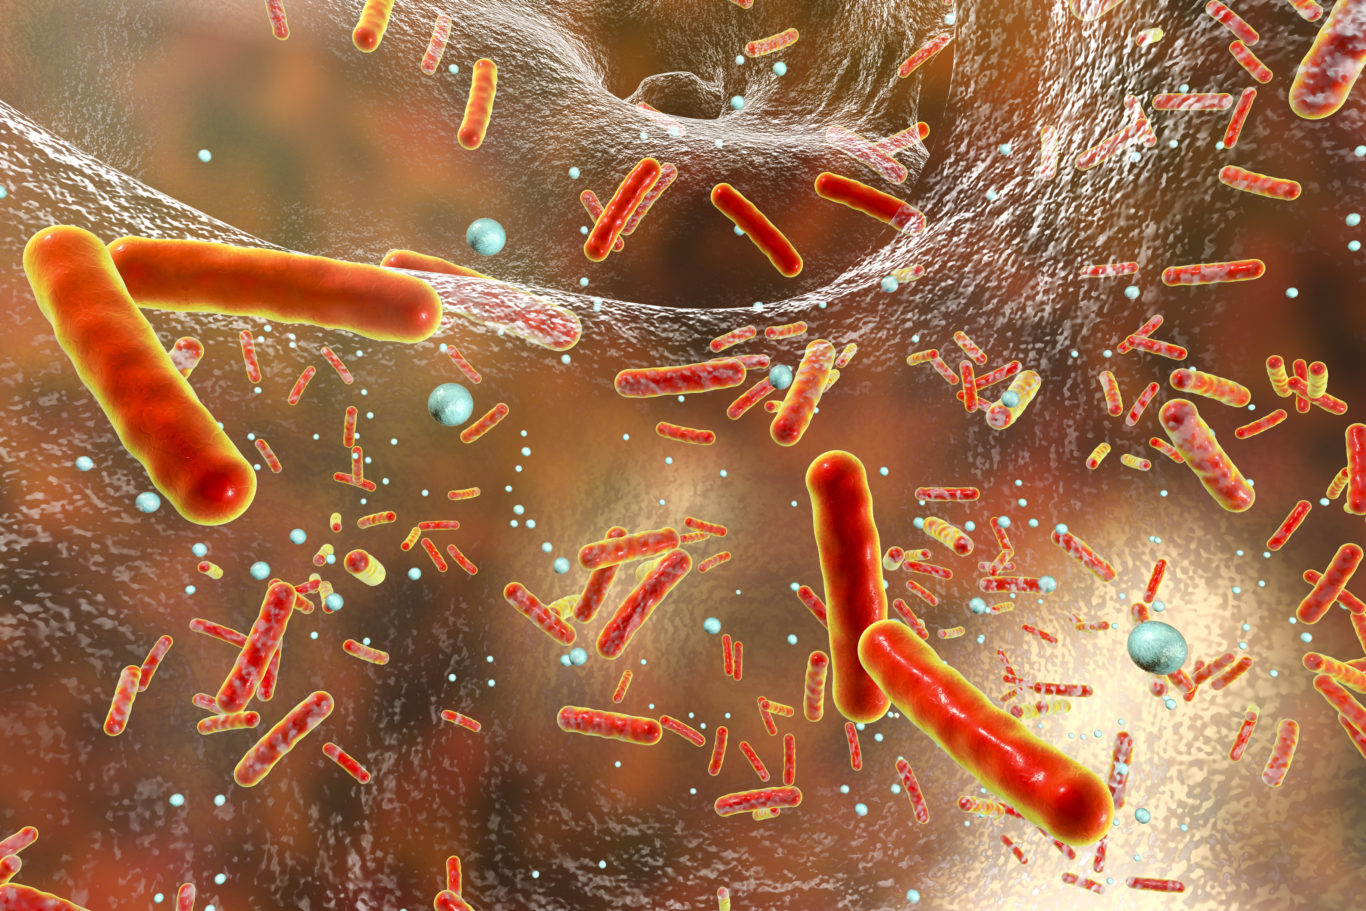 antibiotic resistance in bacteria Antibiotic resistance has been called one of the world's most pressing public health problems the smart use of antibiotics is the key to controlling the spread of resistance.